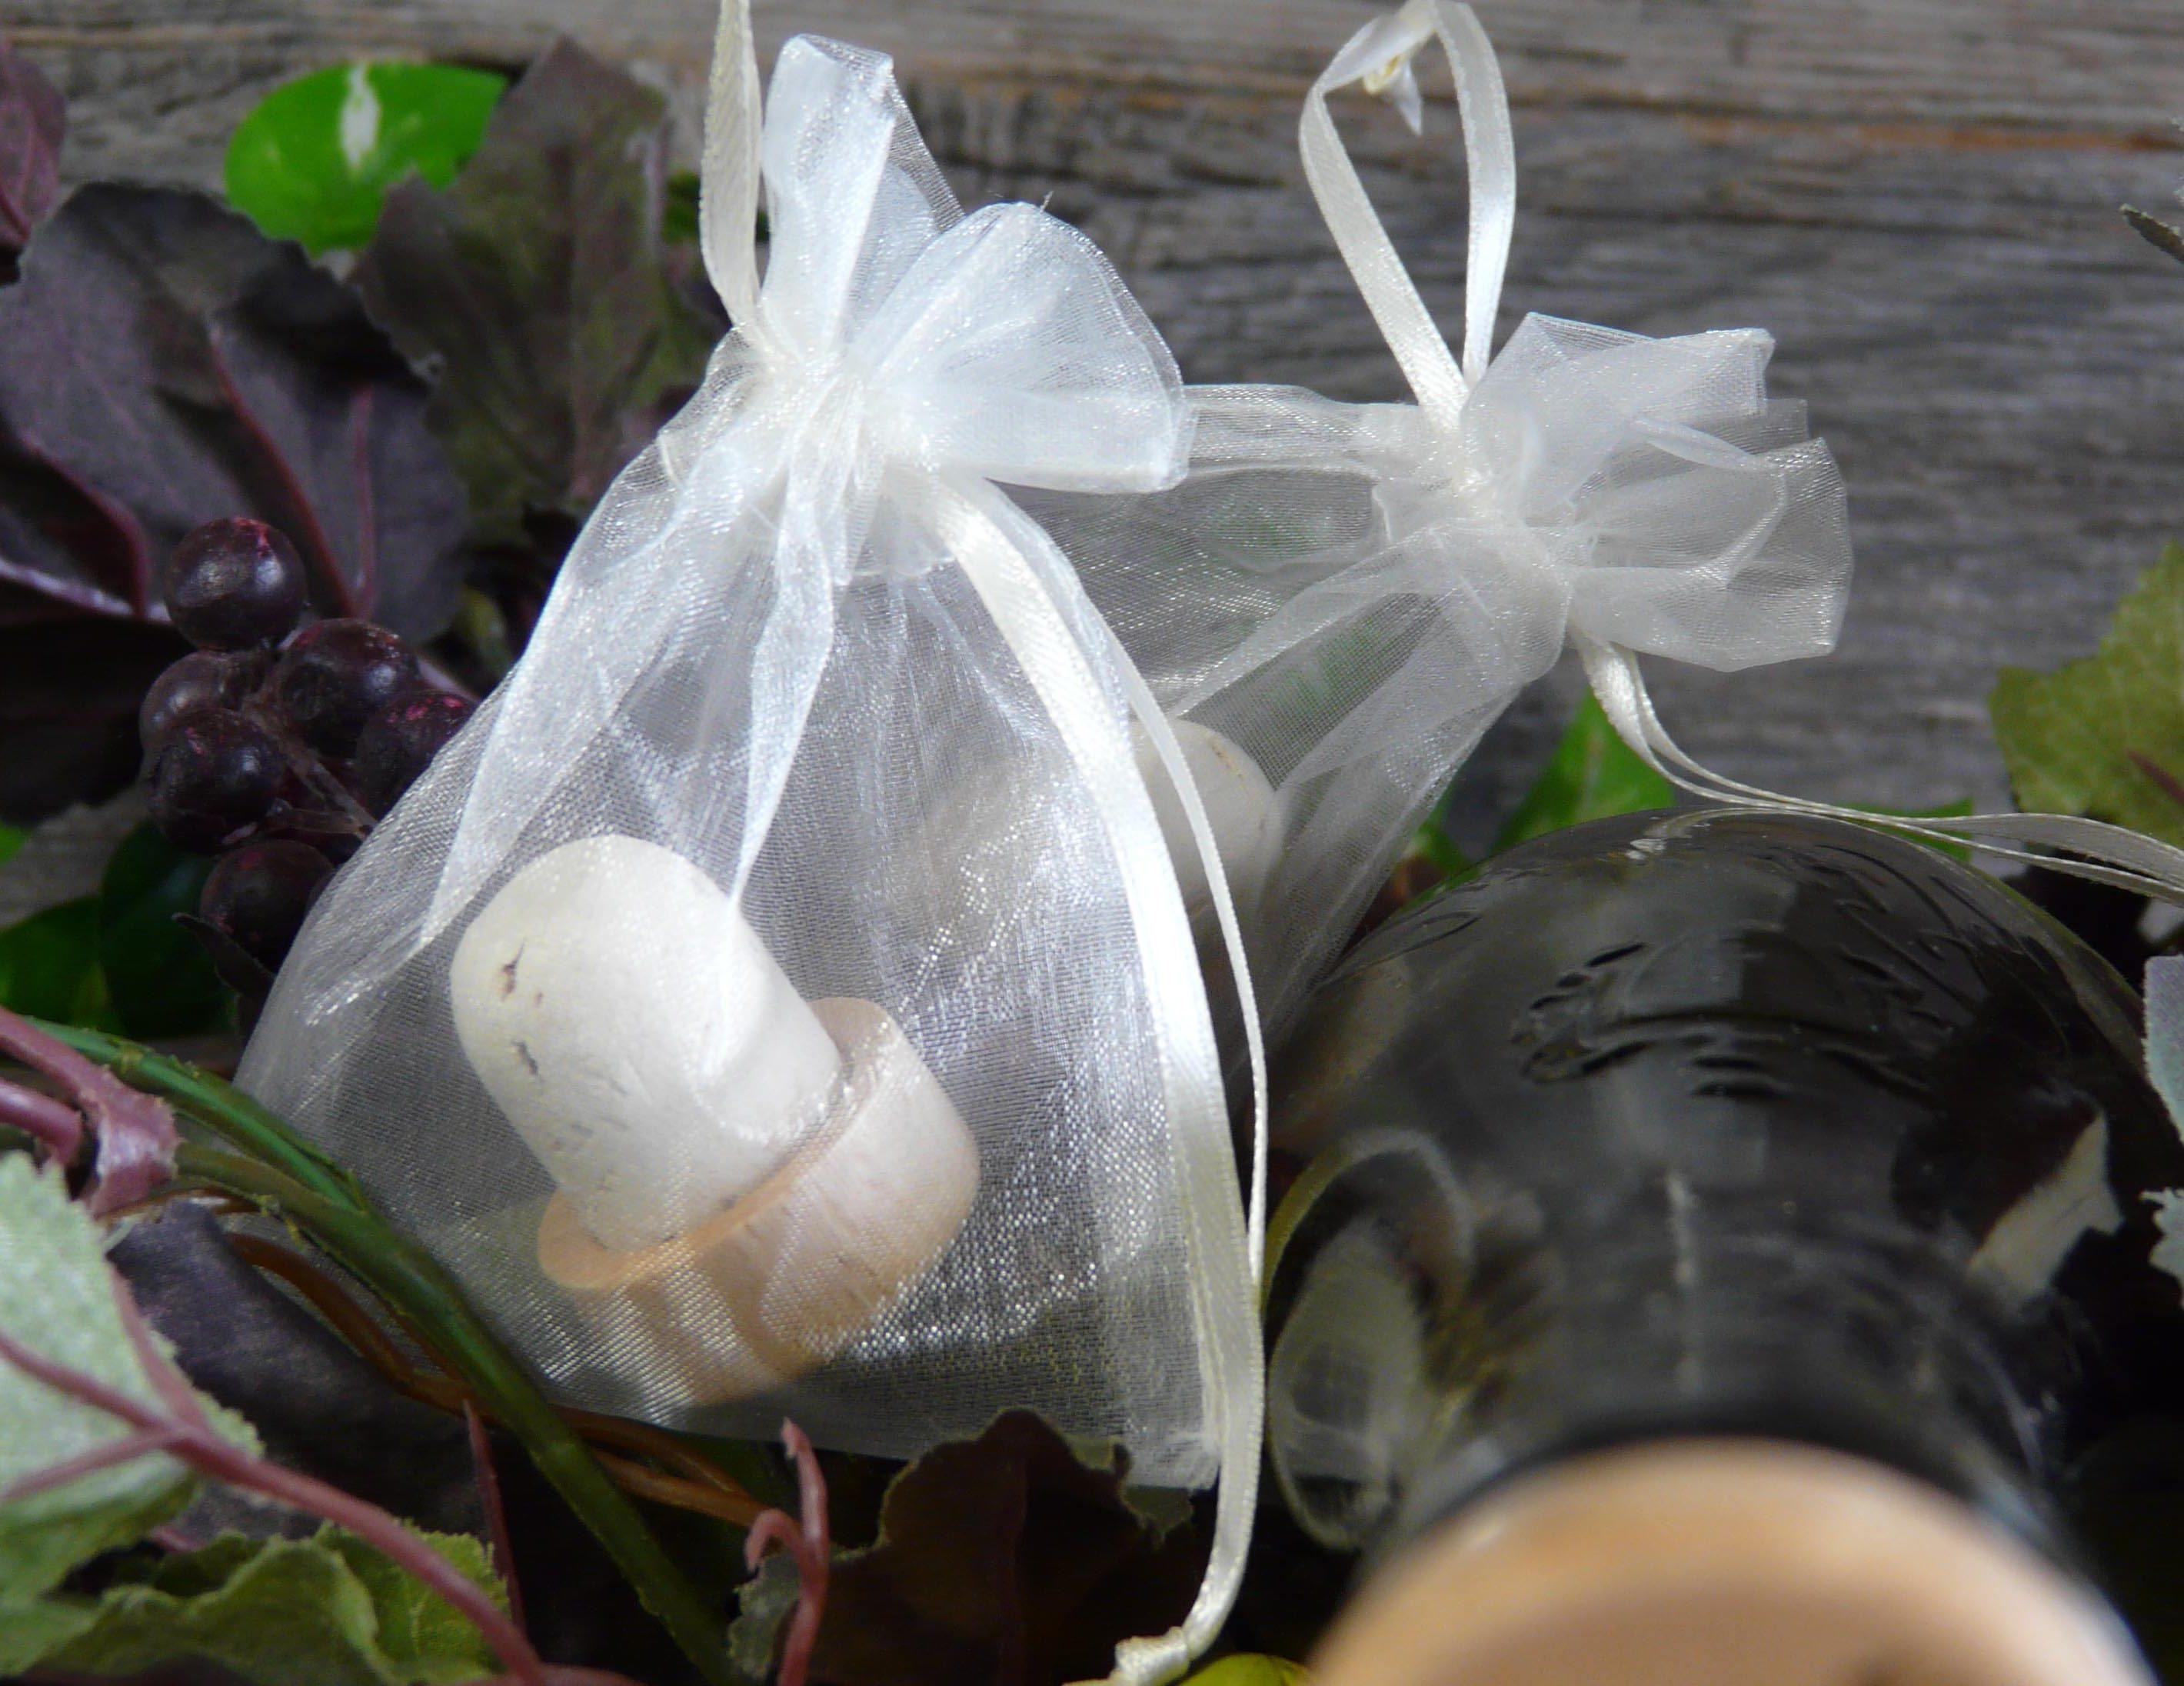 Order our organza bags with your personalized wine stoppers and they will come pre-packaged.